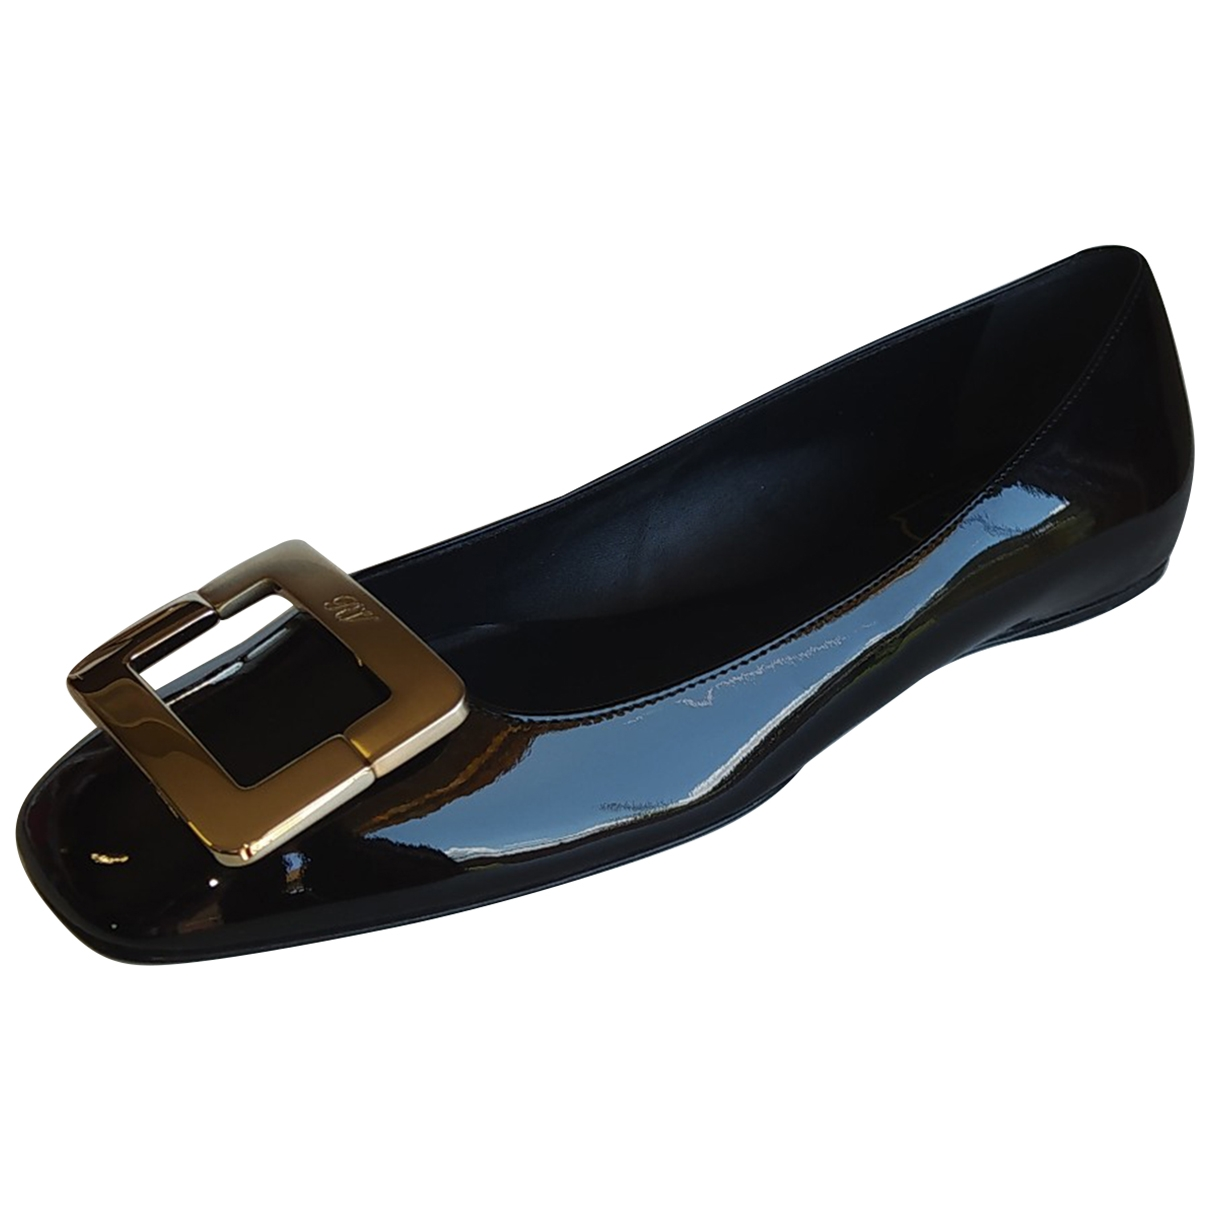 Roger Vivier Gommetine Gold Leather Ballet flats for Women 37.5 EU